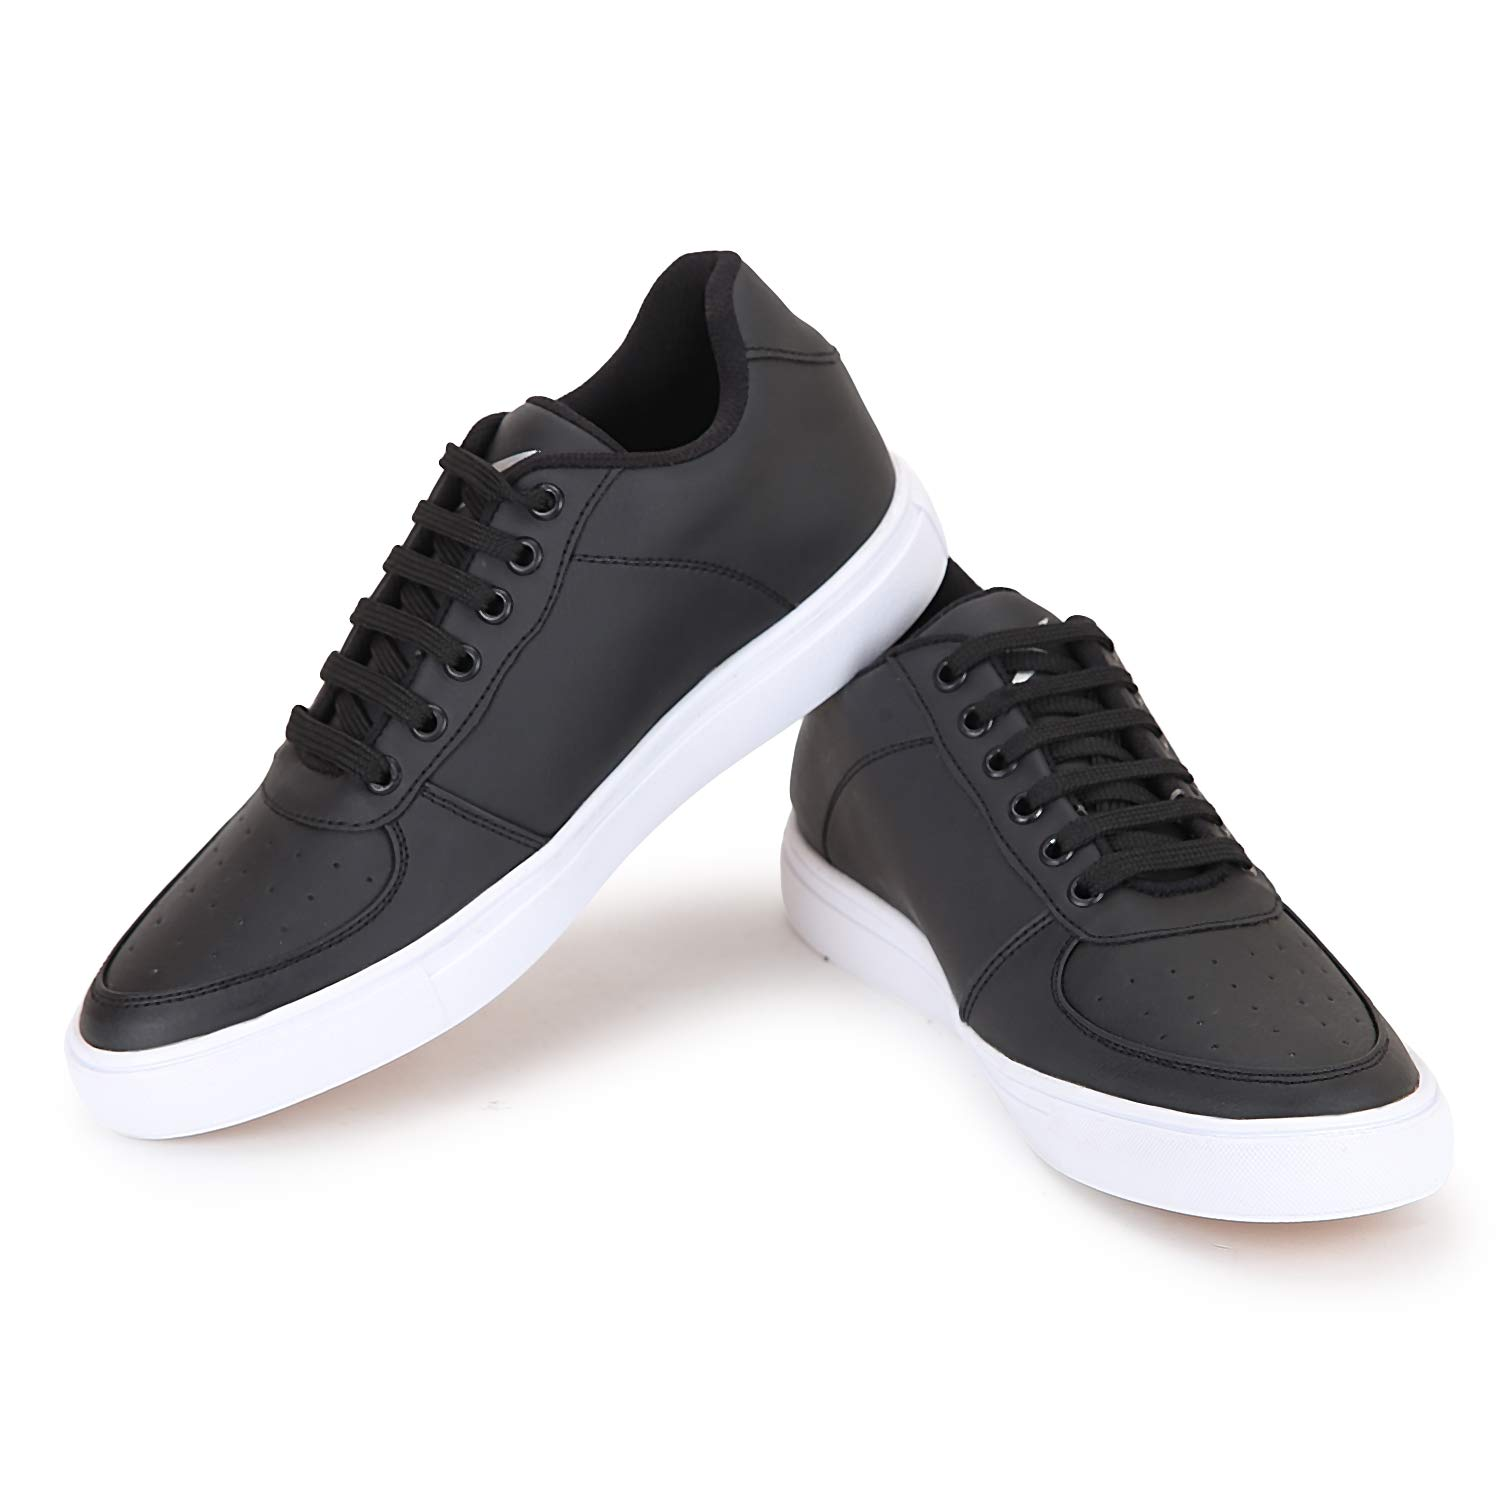 Boltt Envy Smart Casual Sneakers for